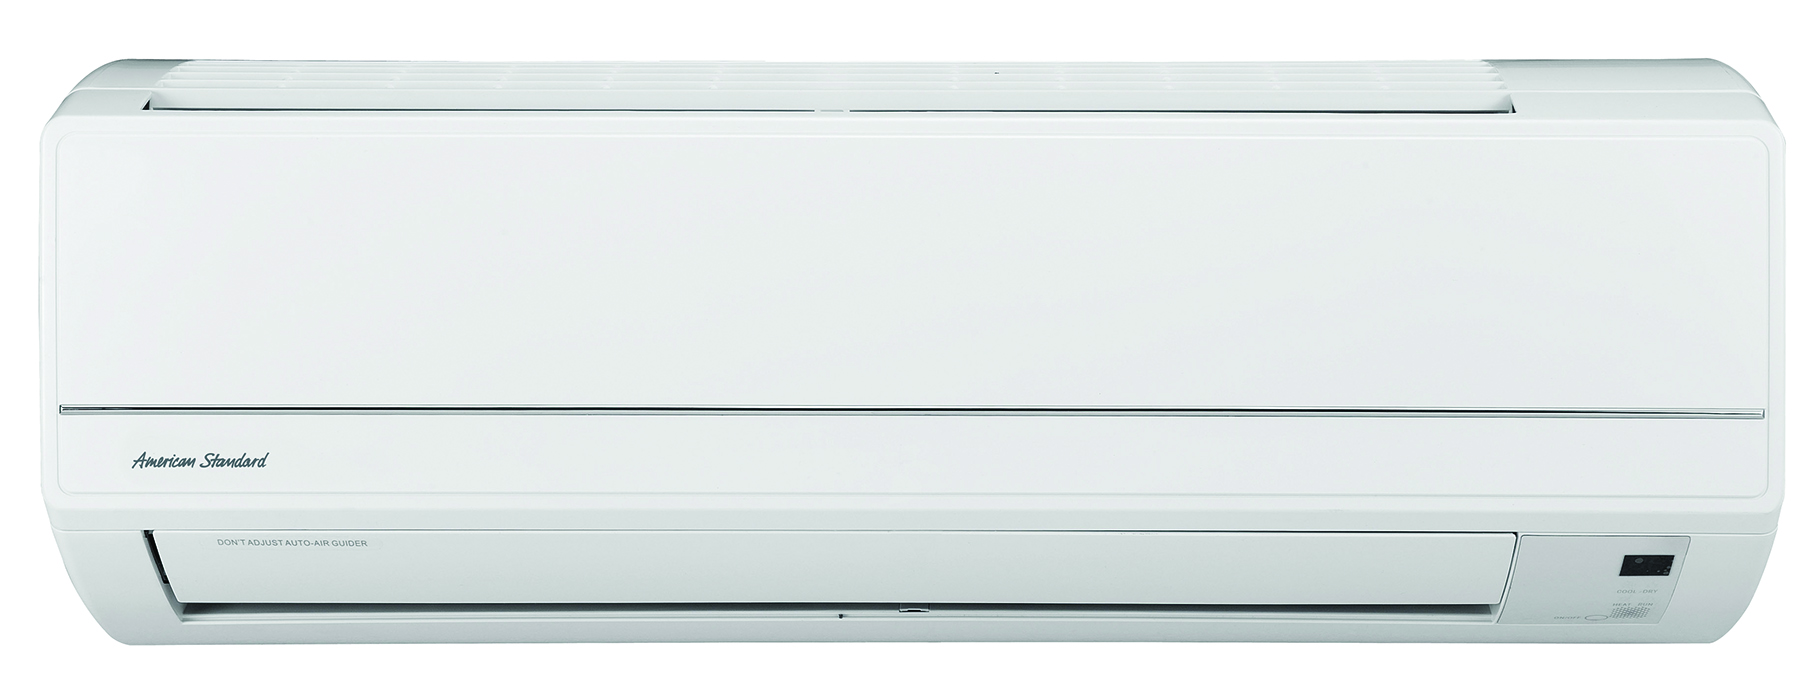 American Standard Gc Heating And Cooling Quality Air